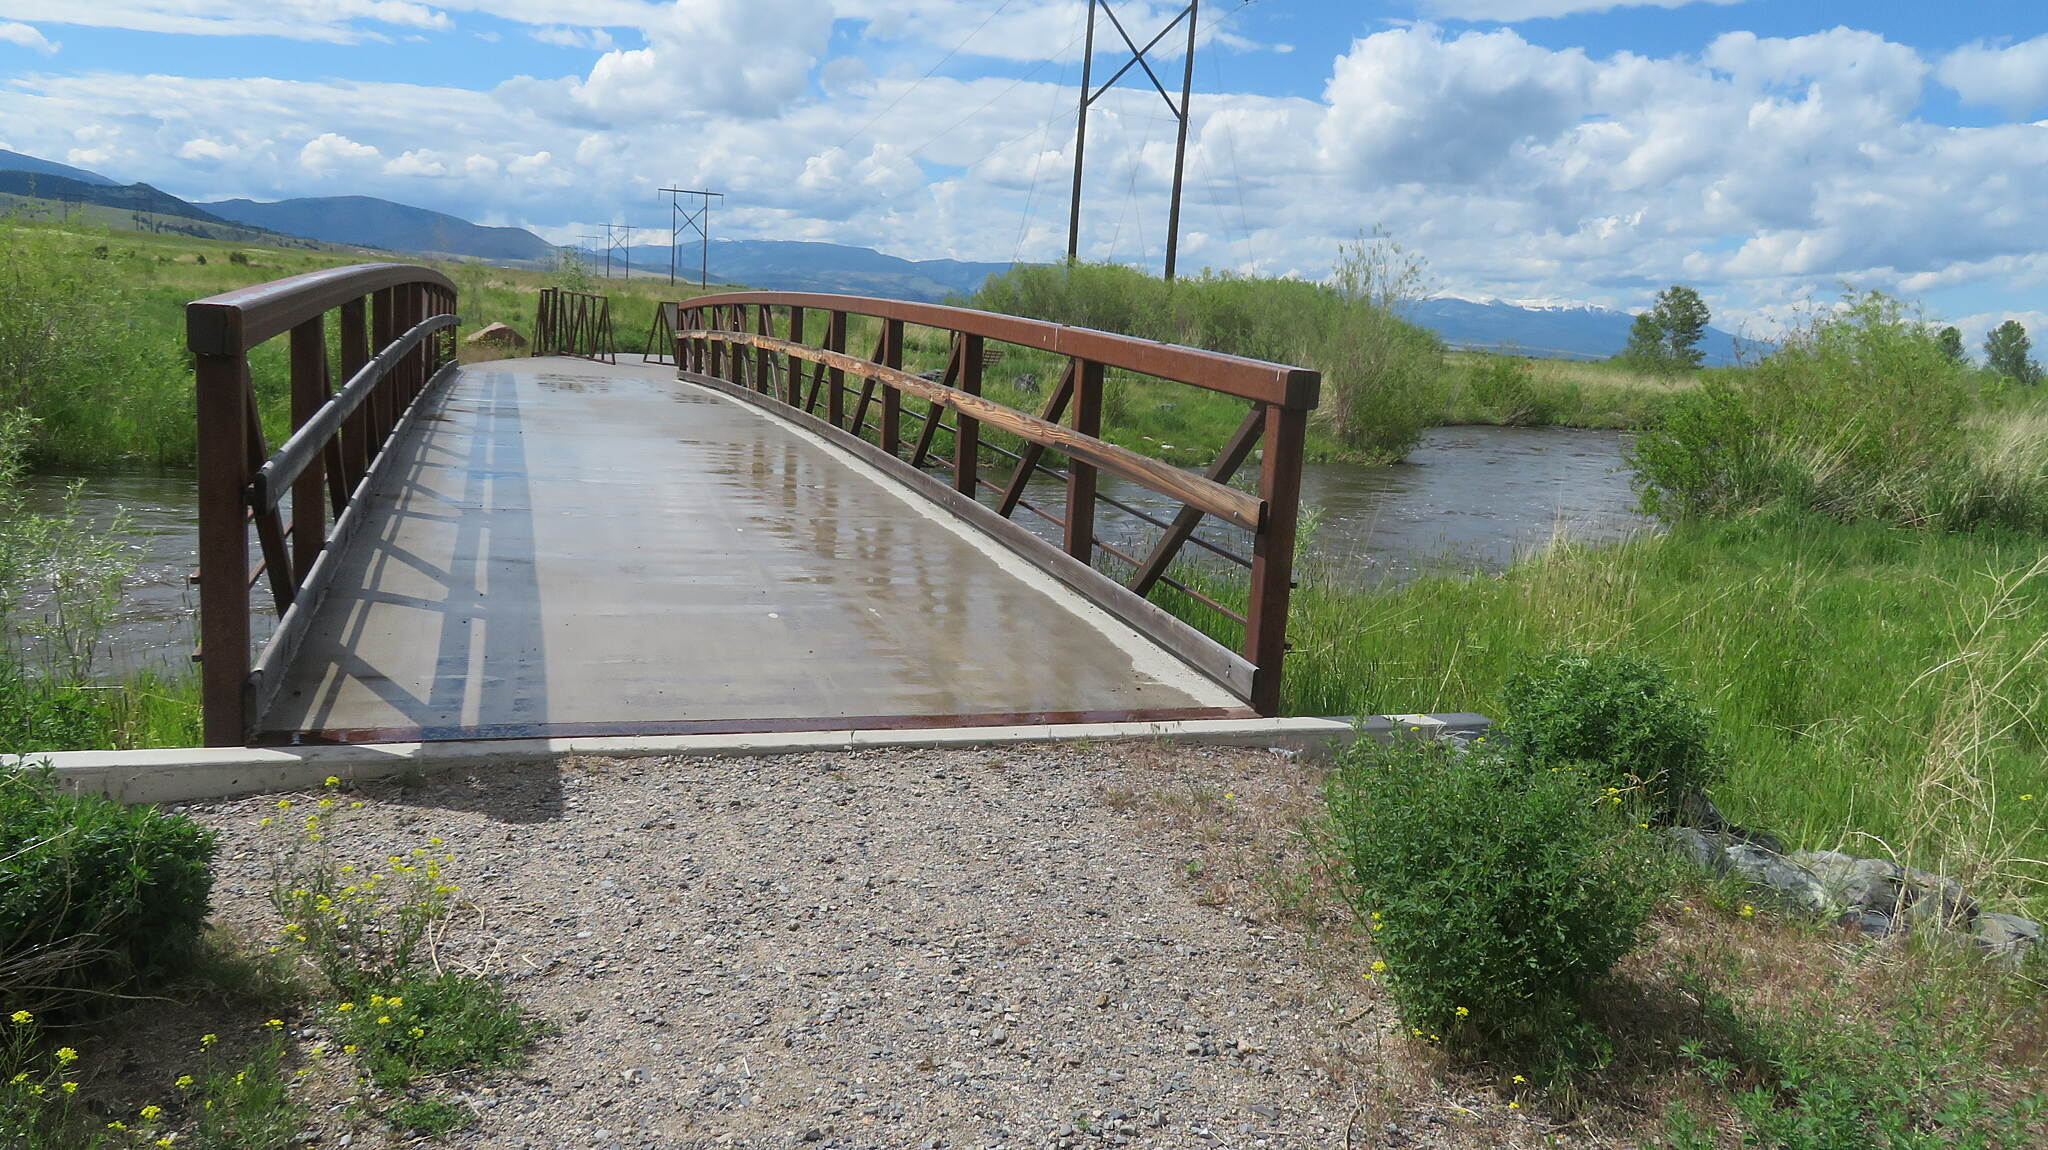 Silver Bow Creek Greenway Bridge Over Silver Bow Creek Southern end of Fairmont Rd to Crackerville Rd segment